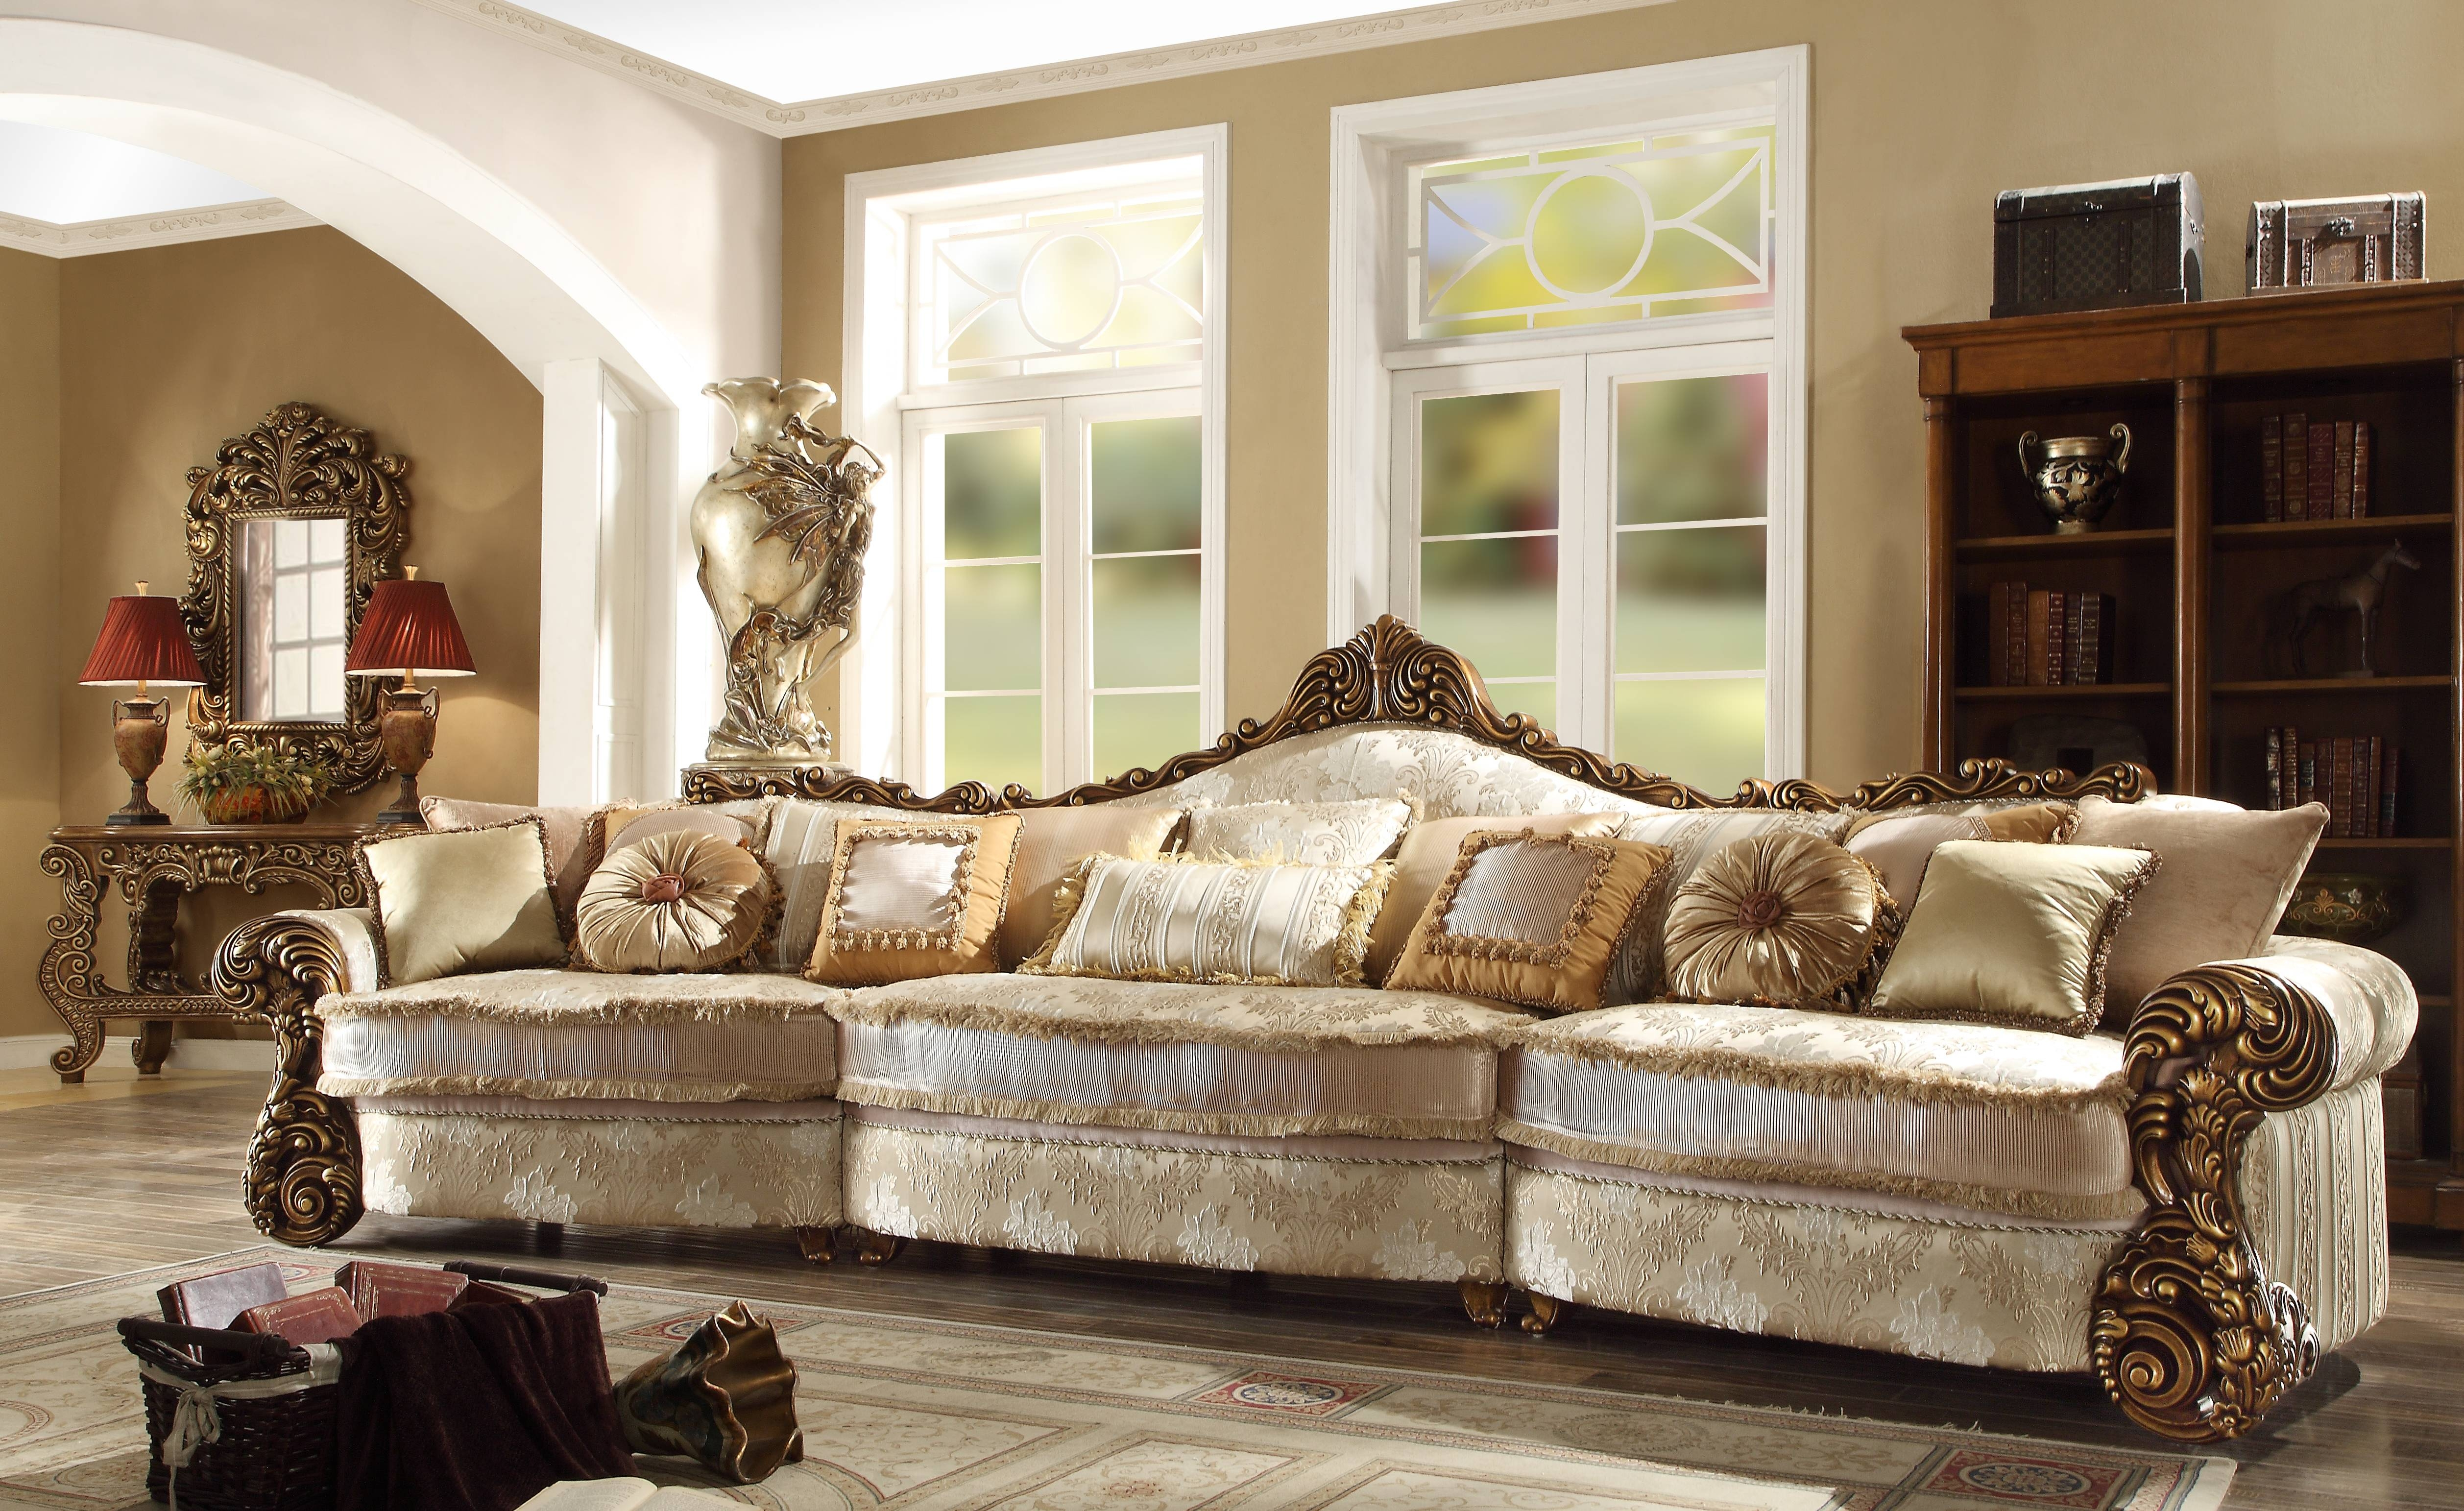 New Luxury Formal Classic European Style 5 Seat Sectional Sofa Hd with regard to European Style Sofas (Image 17 of 30)